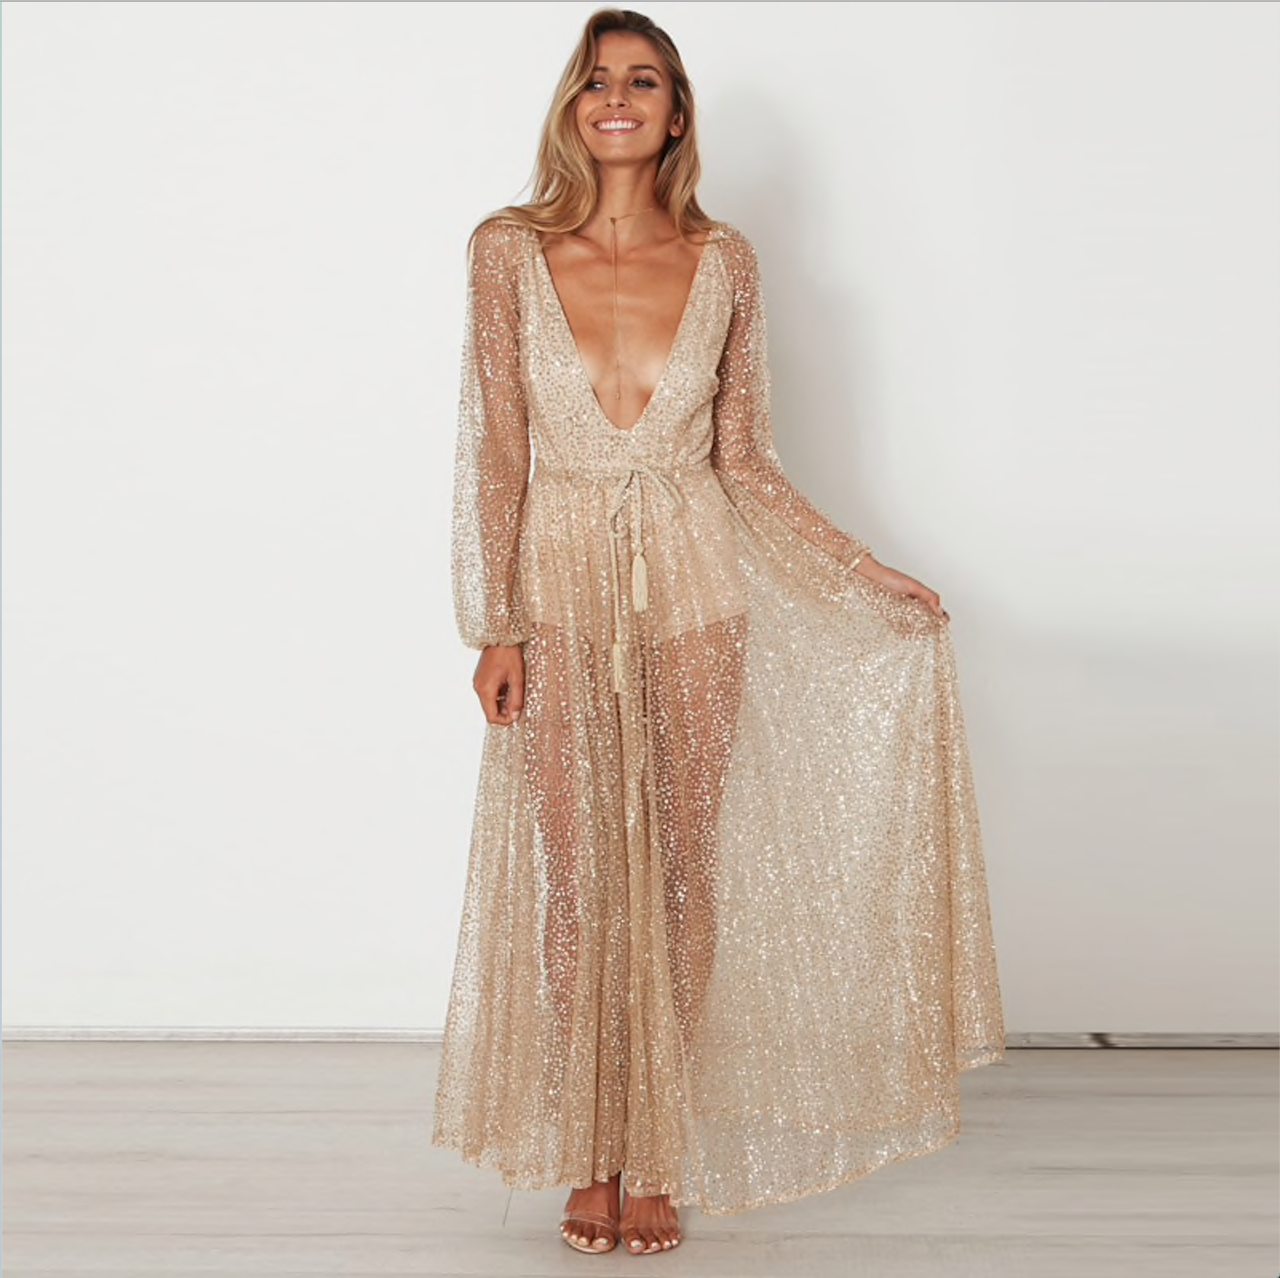 6c81f378c1a60 Women's Summer Boho Sexy Long Maxi Evening Party Dress Beach V-neck Gold  Long Sleeve Dresses Sequins Sundress Glitter